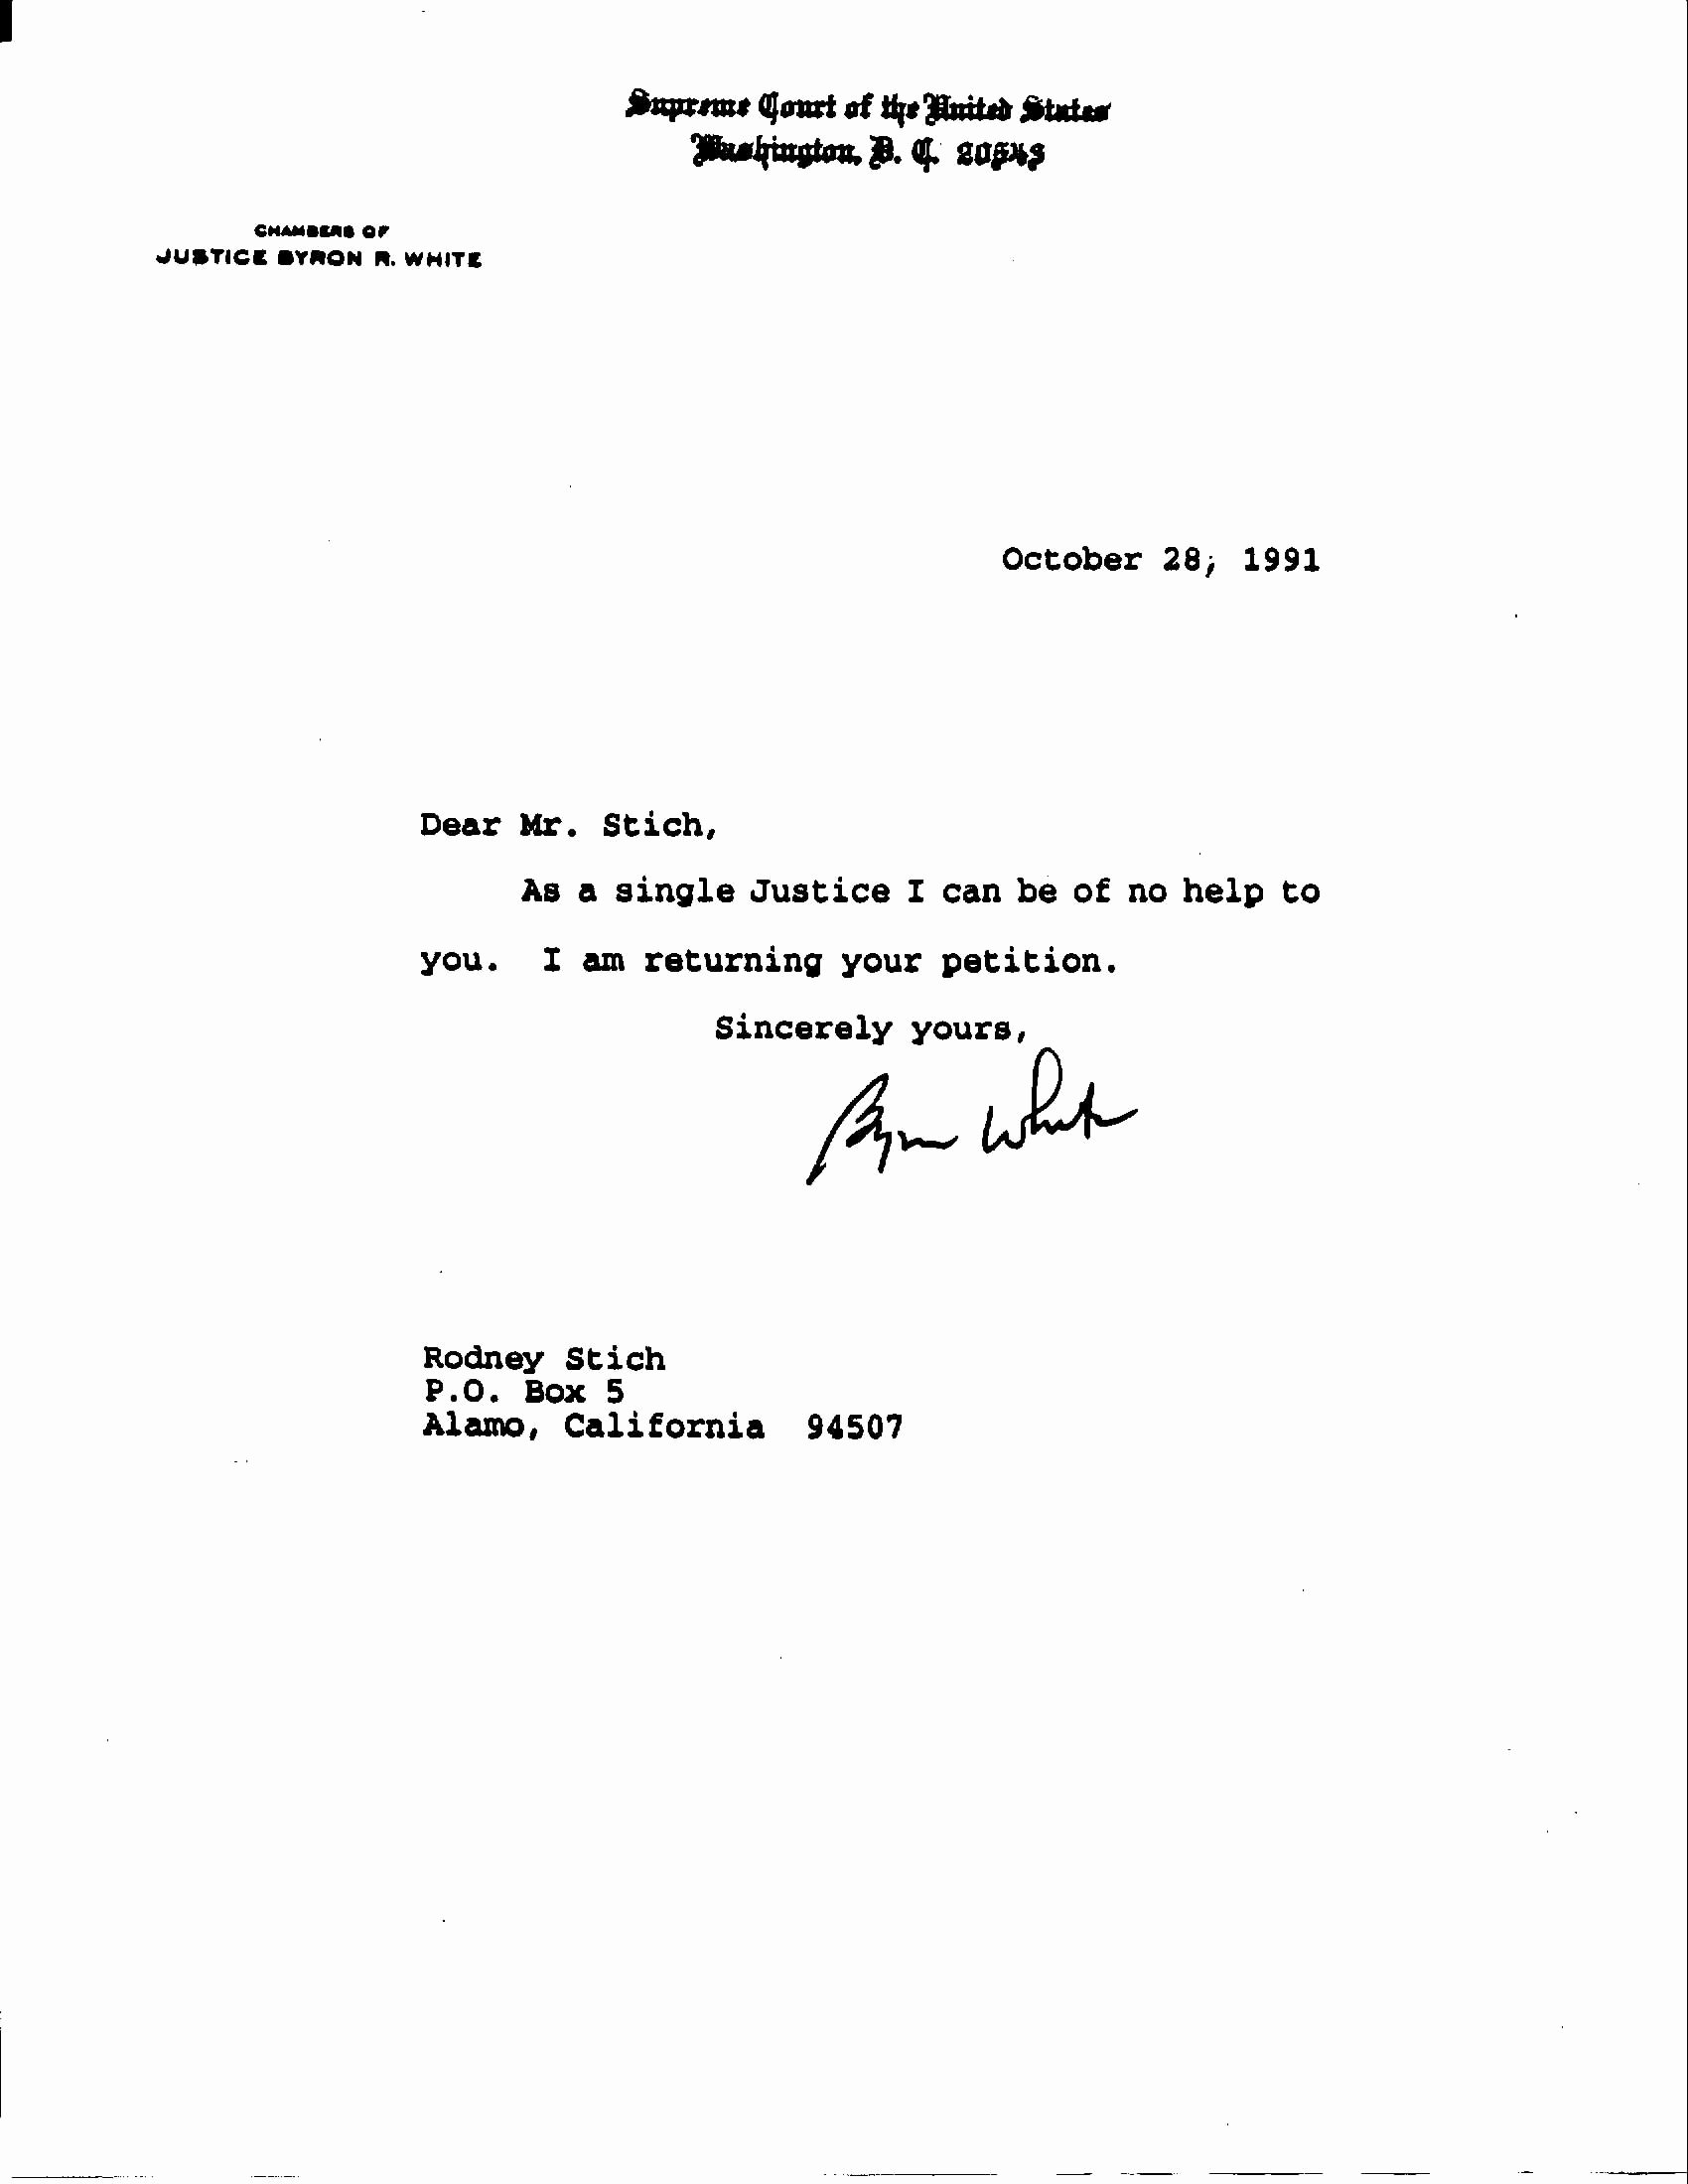 Court Letter format Awesome Letter From Supreme Court Legal Letter format Letter and